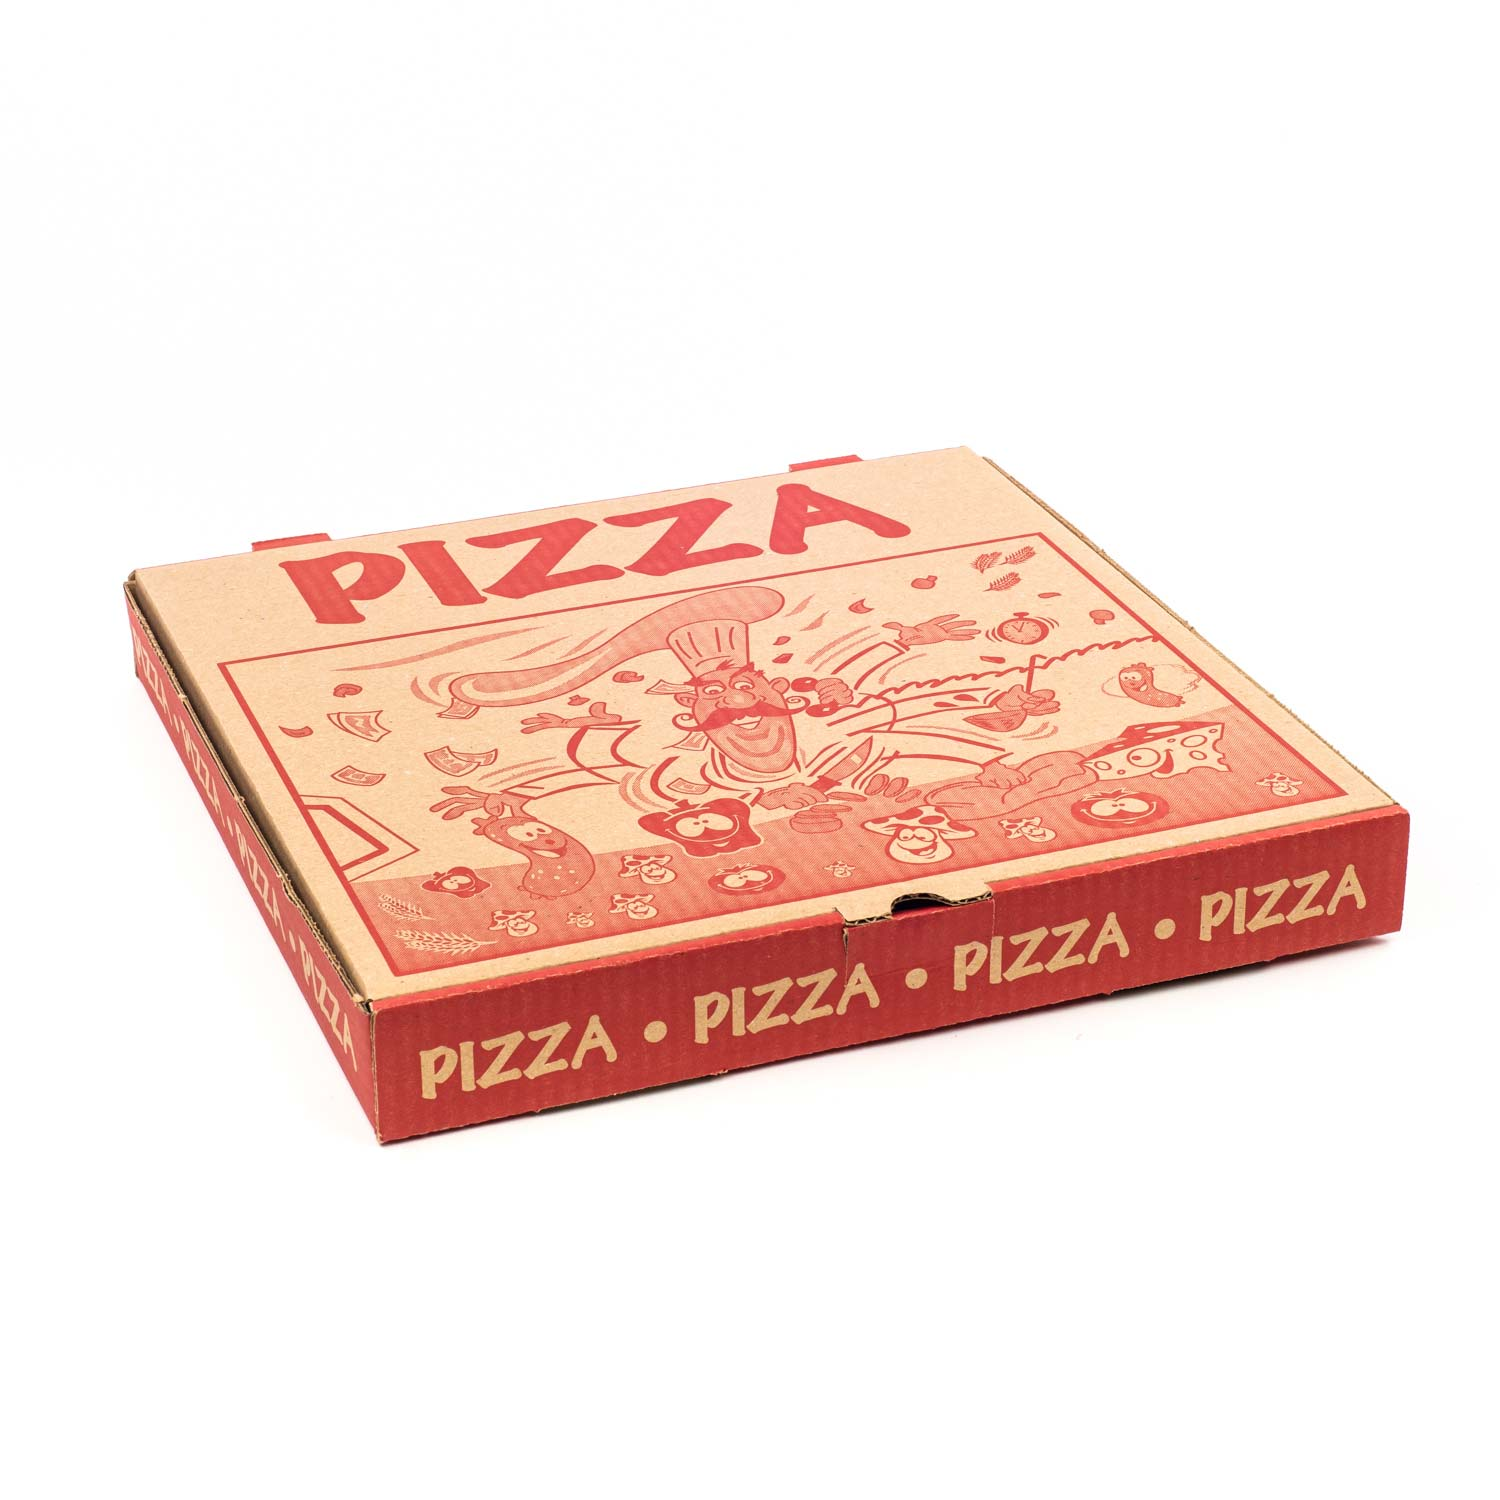 Meubles Atlas Exincourt Printed Corrugated Pizza Box 10 X50